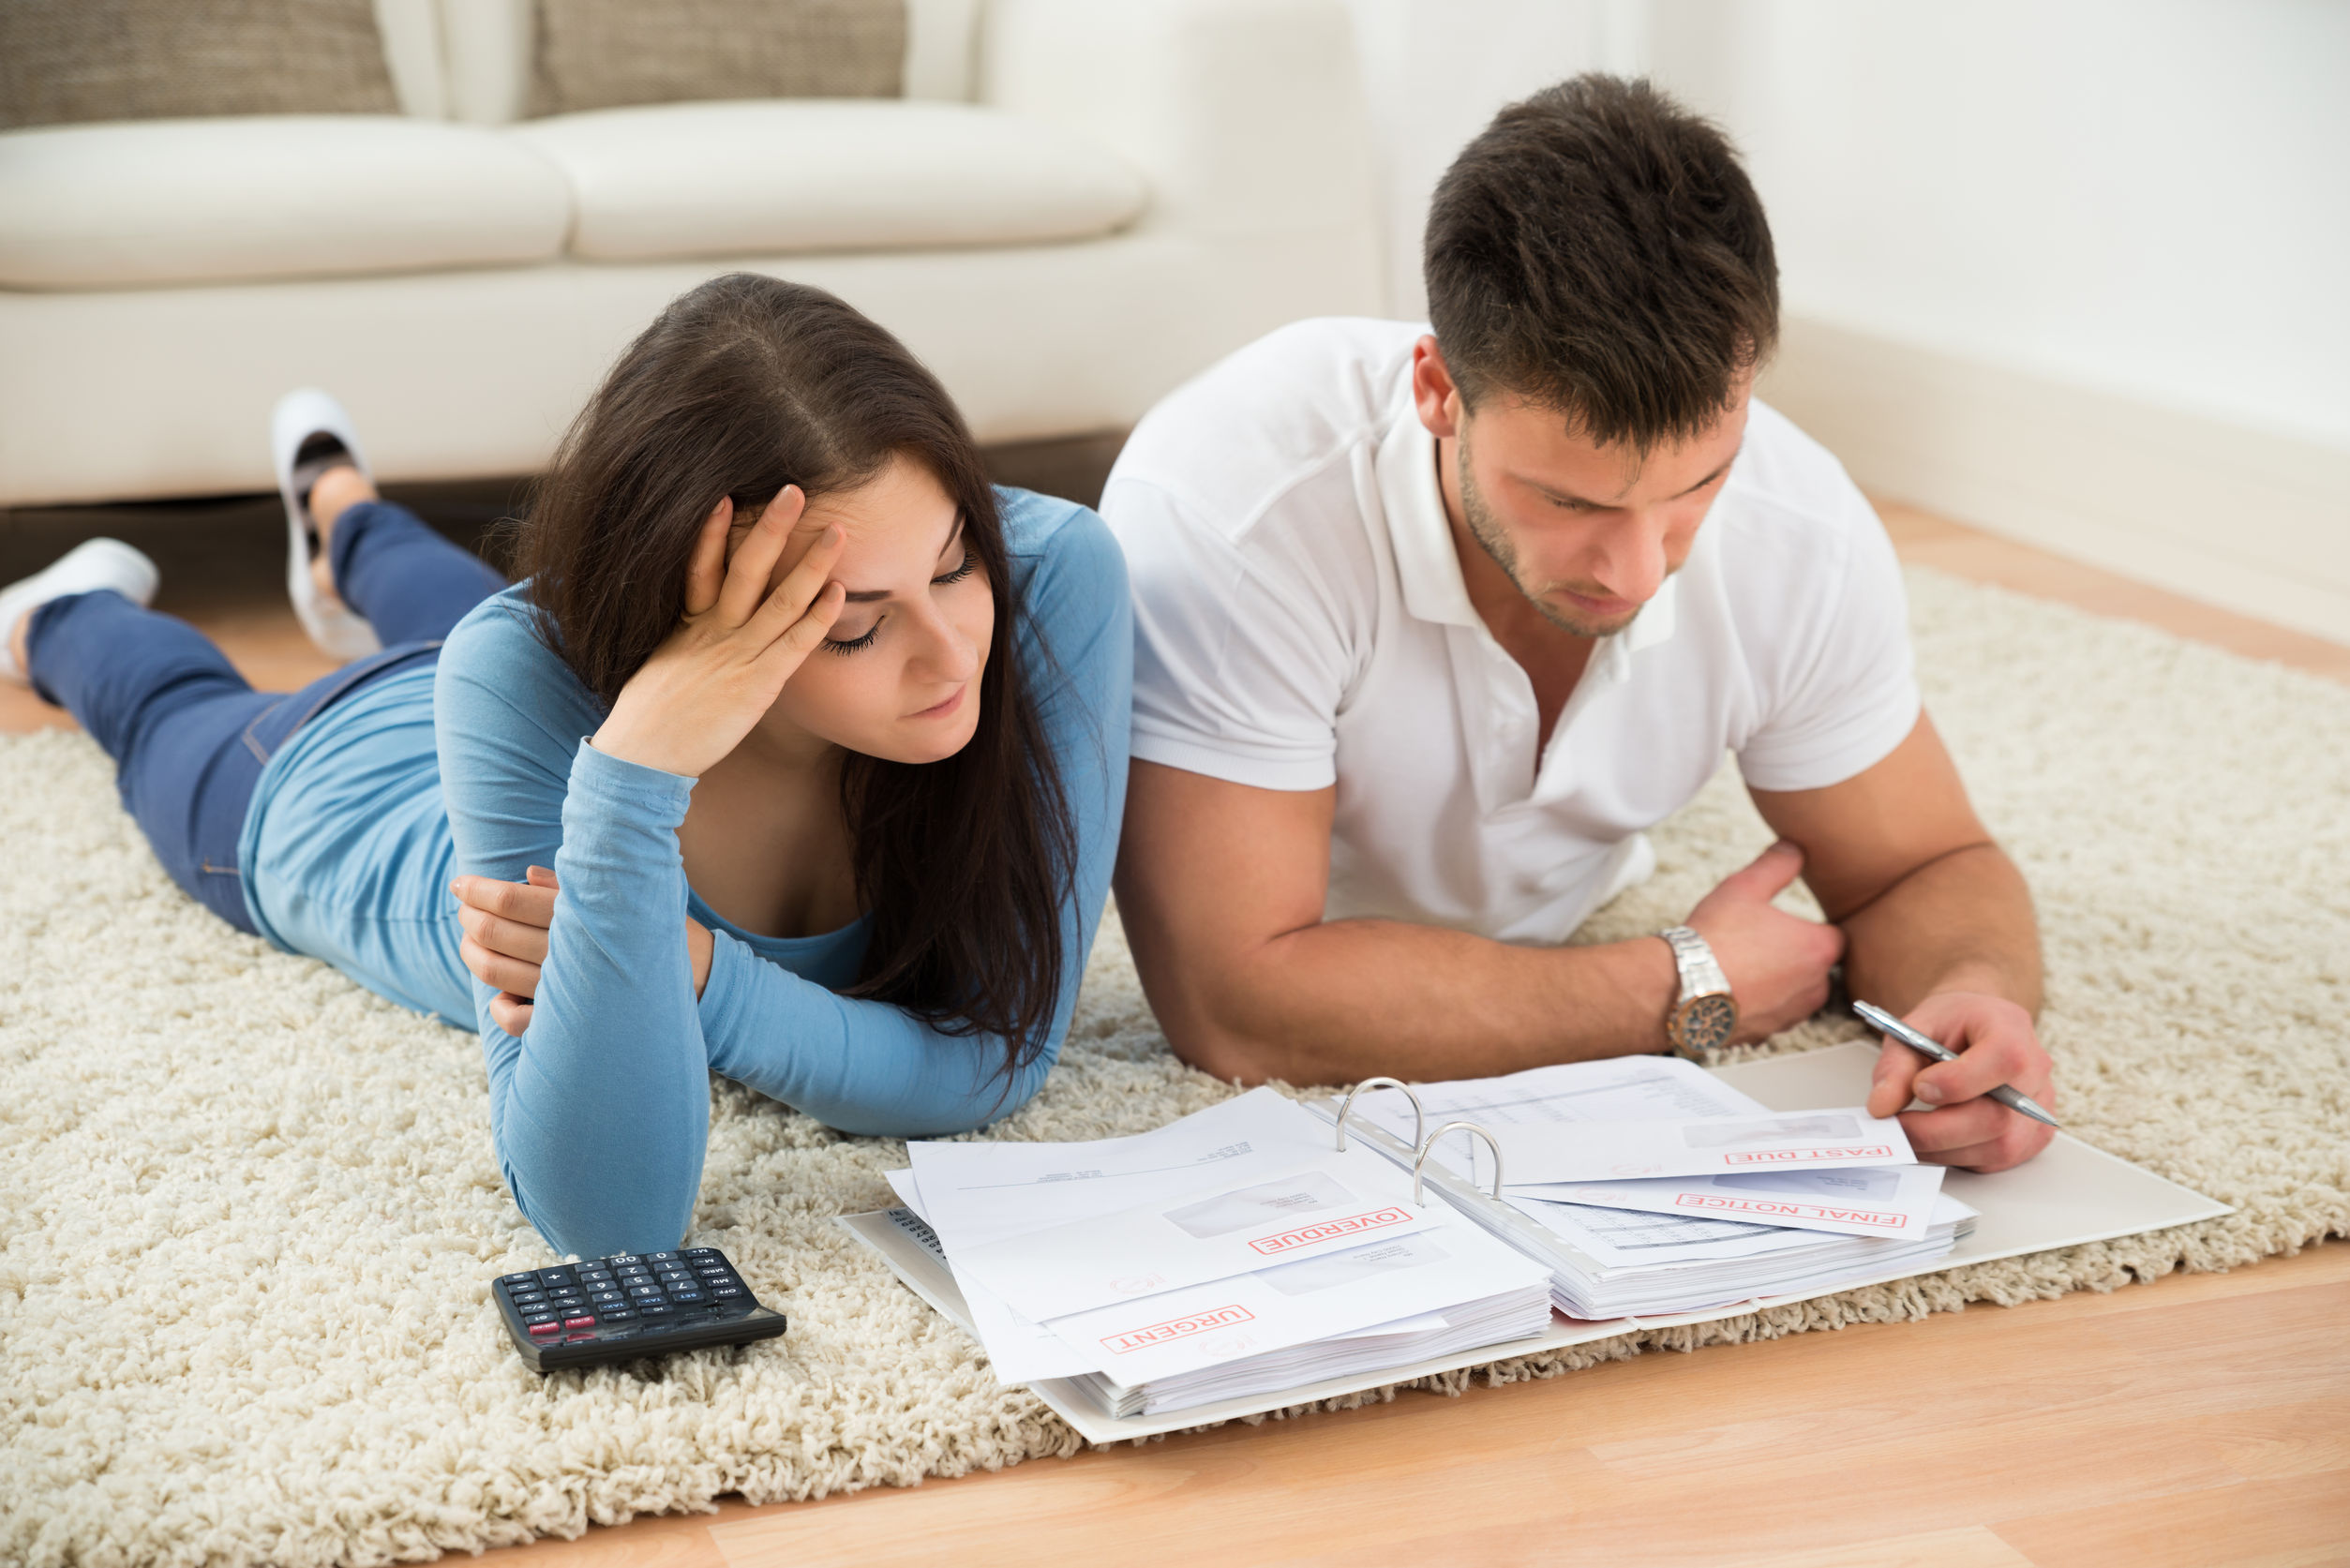 41317954 - worried young couple lying on carpet calculating their bills at home